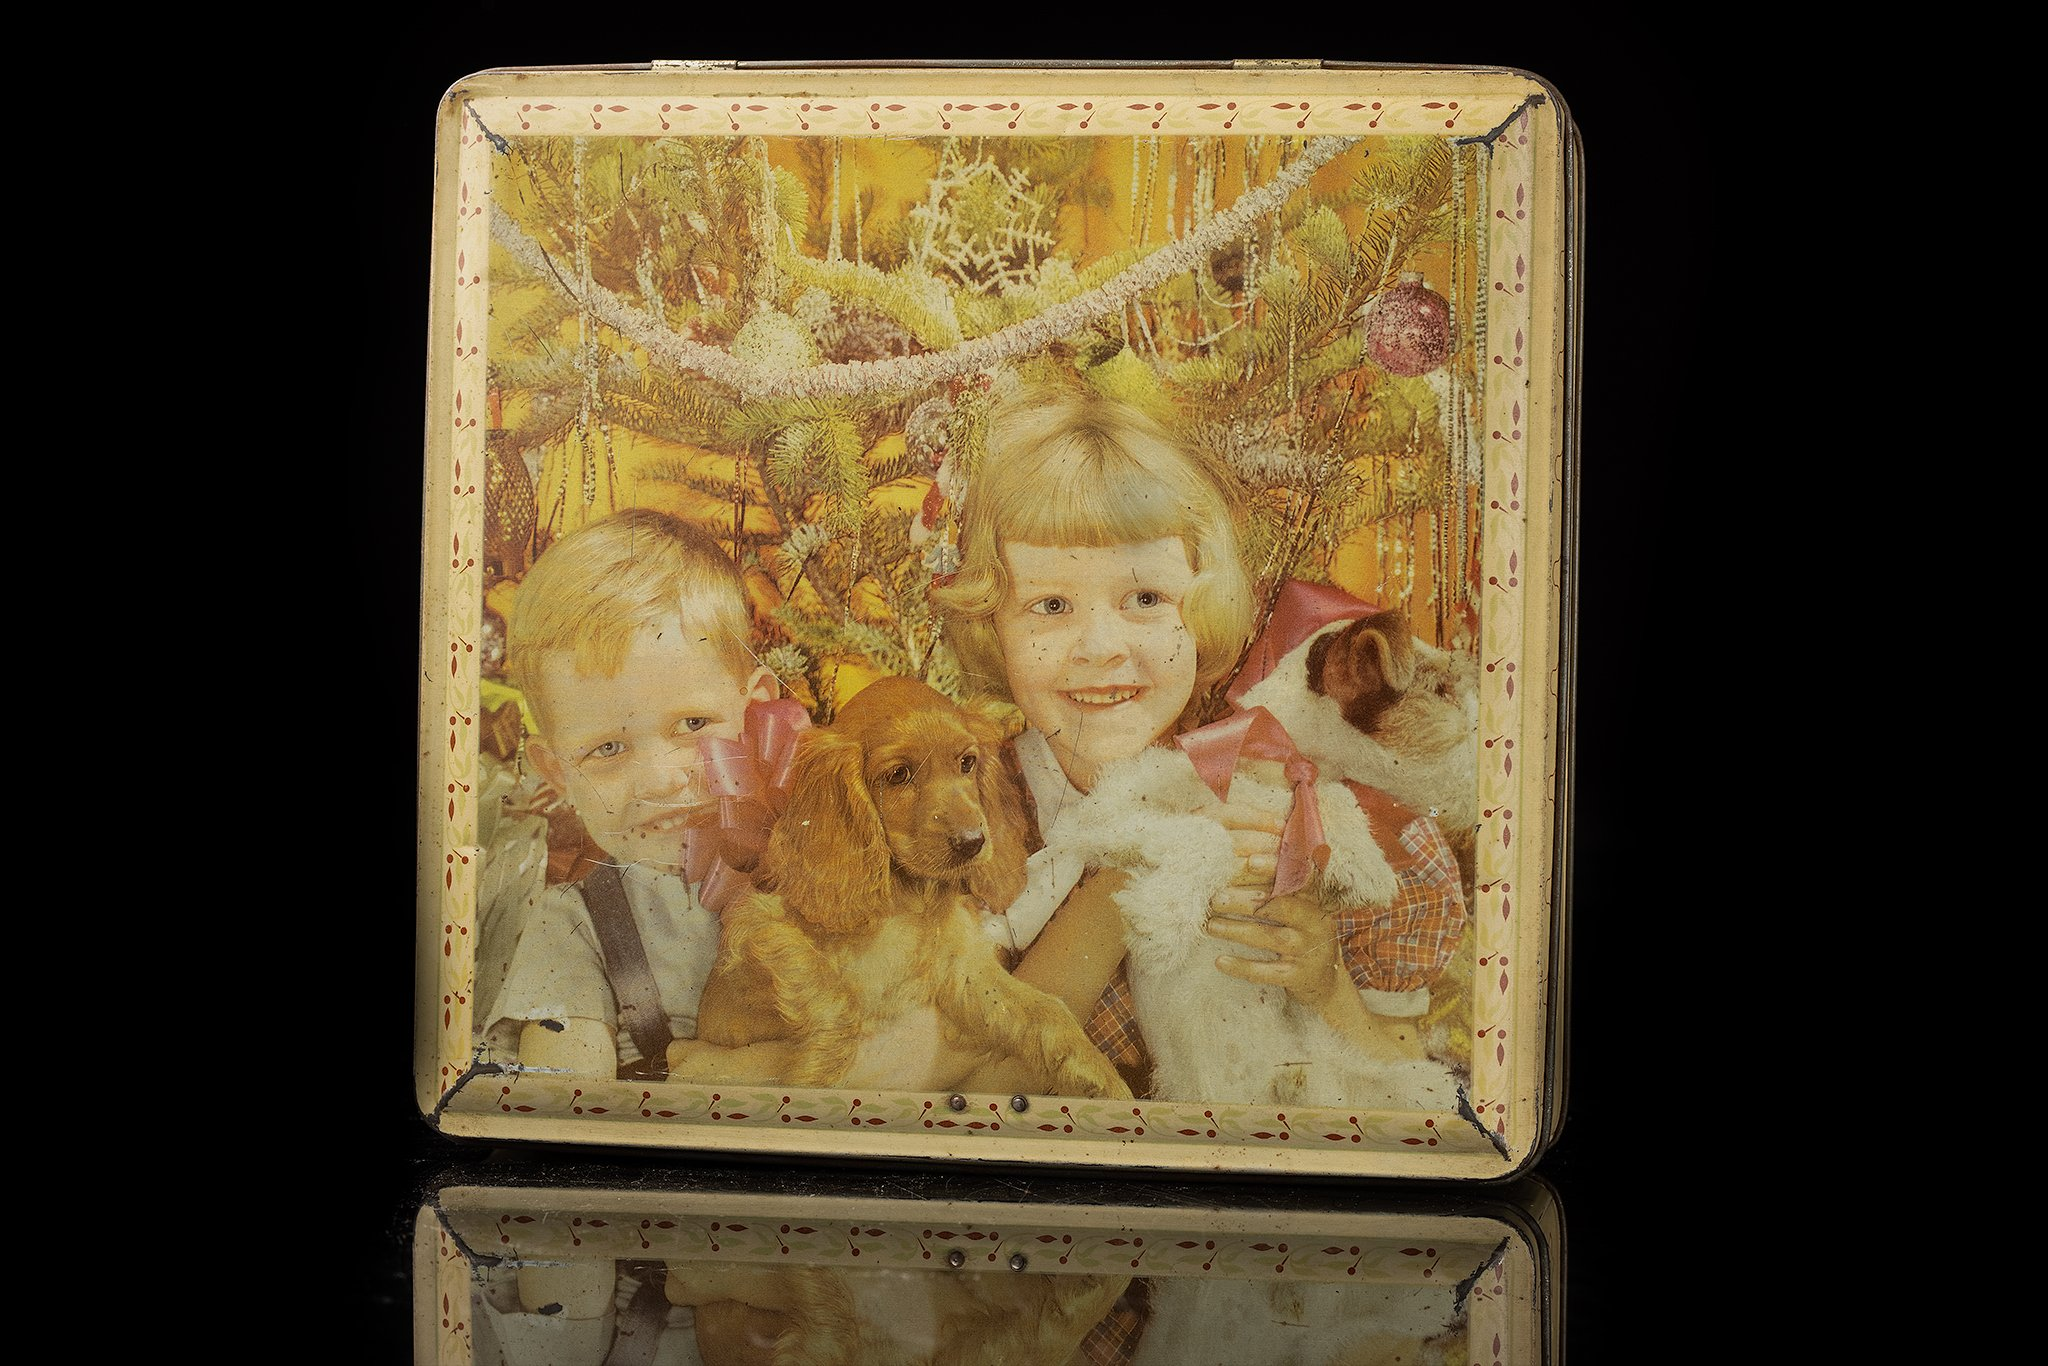 Vintage-tin-dog-box-brother-and-sister